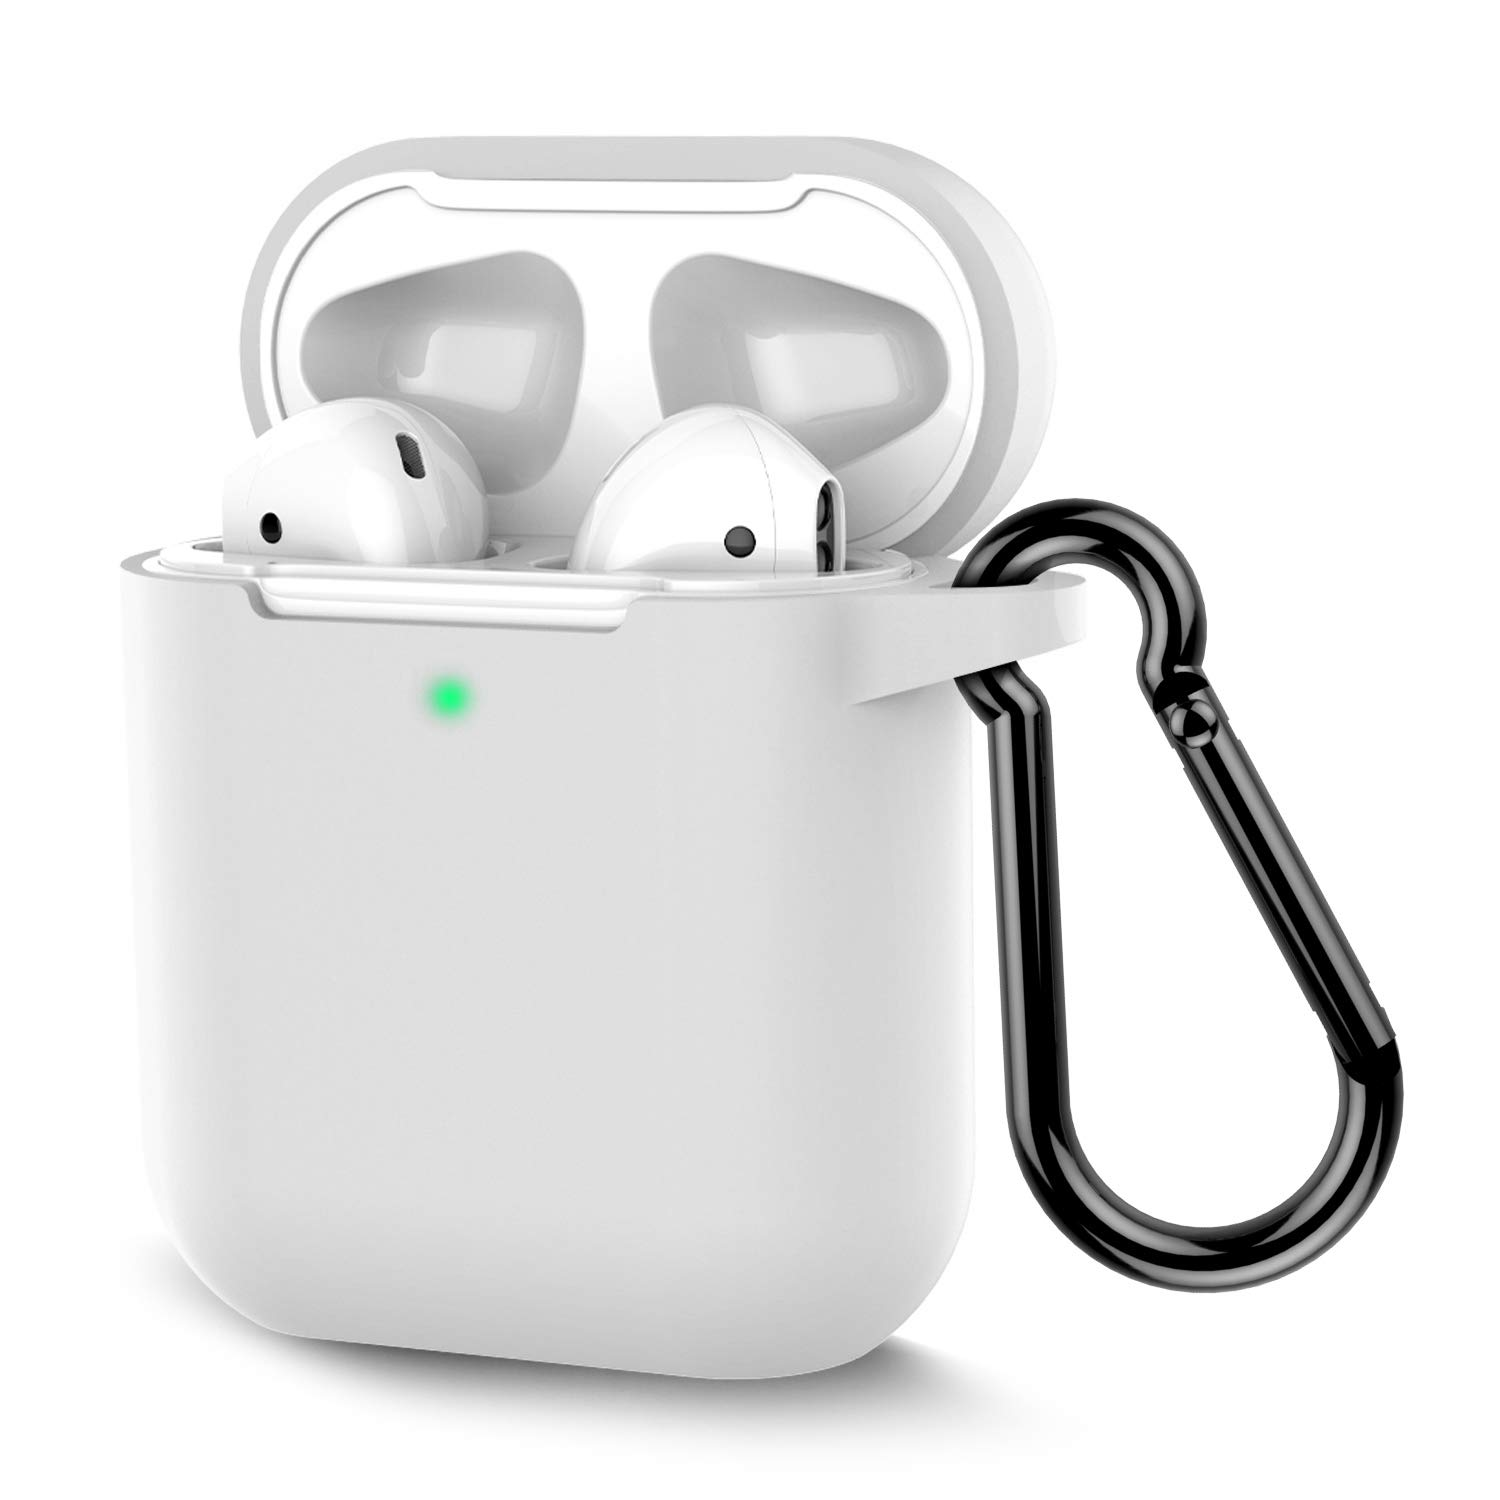 Coffea AirPods Case, Protective Silicone Cover Skin with Keychain for AirPods 2 Wireless Charging Case [Front LED Visible] (White)